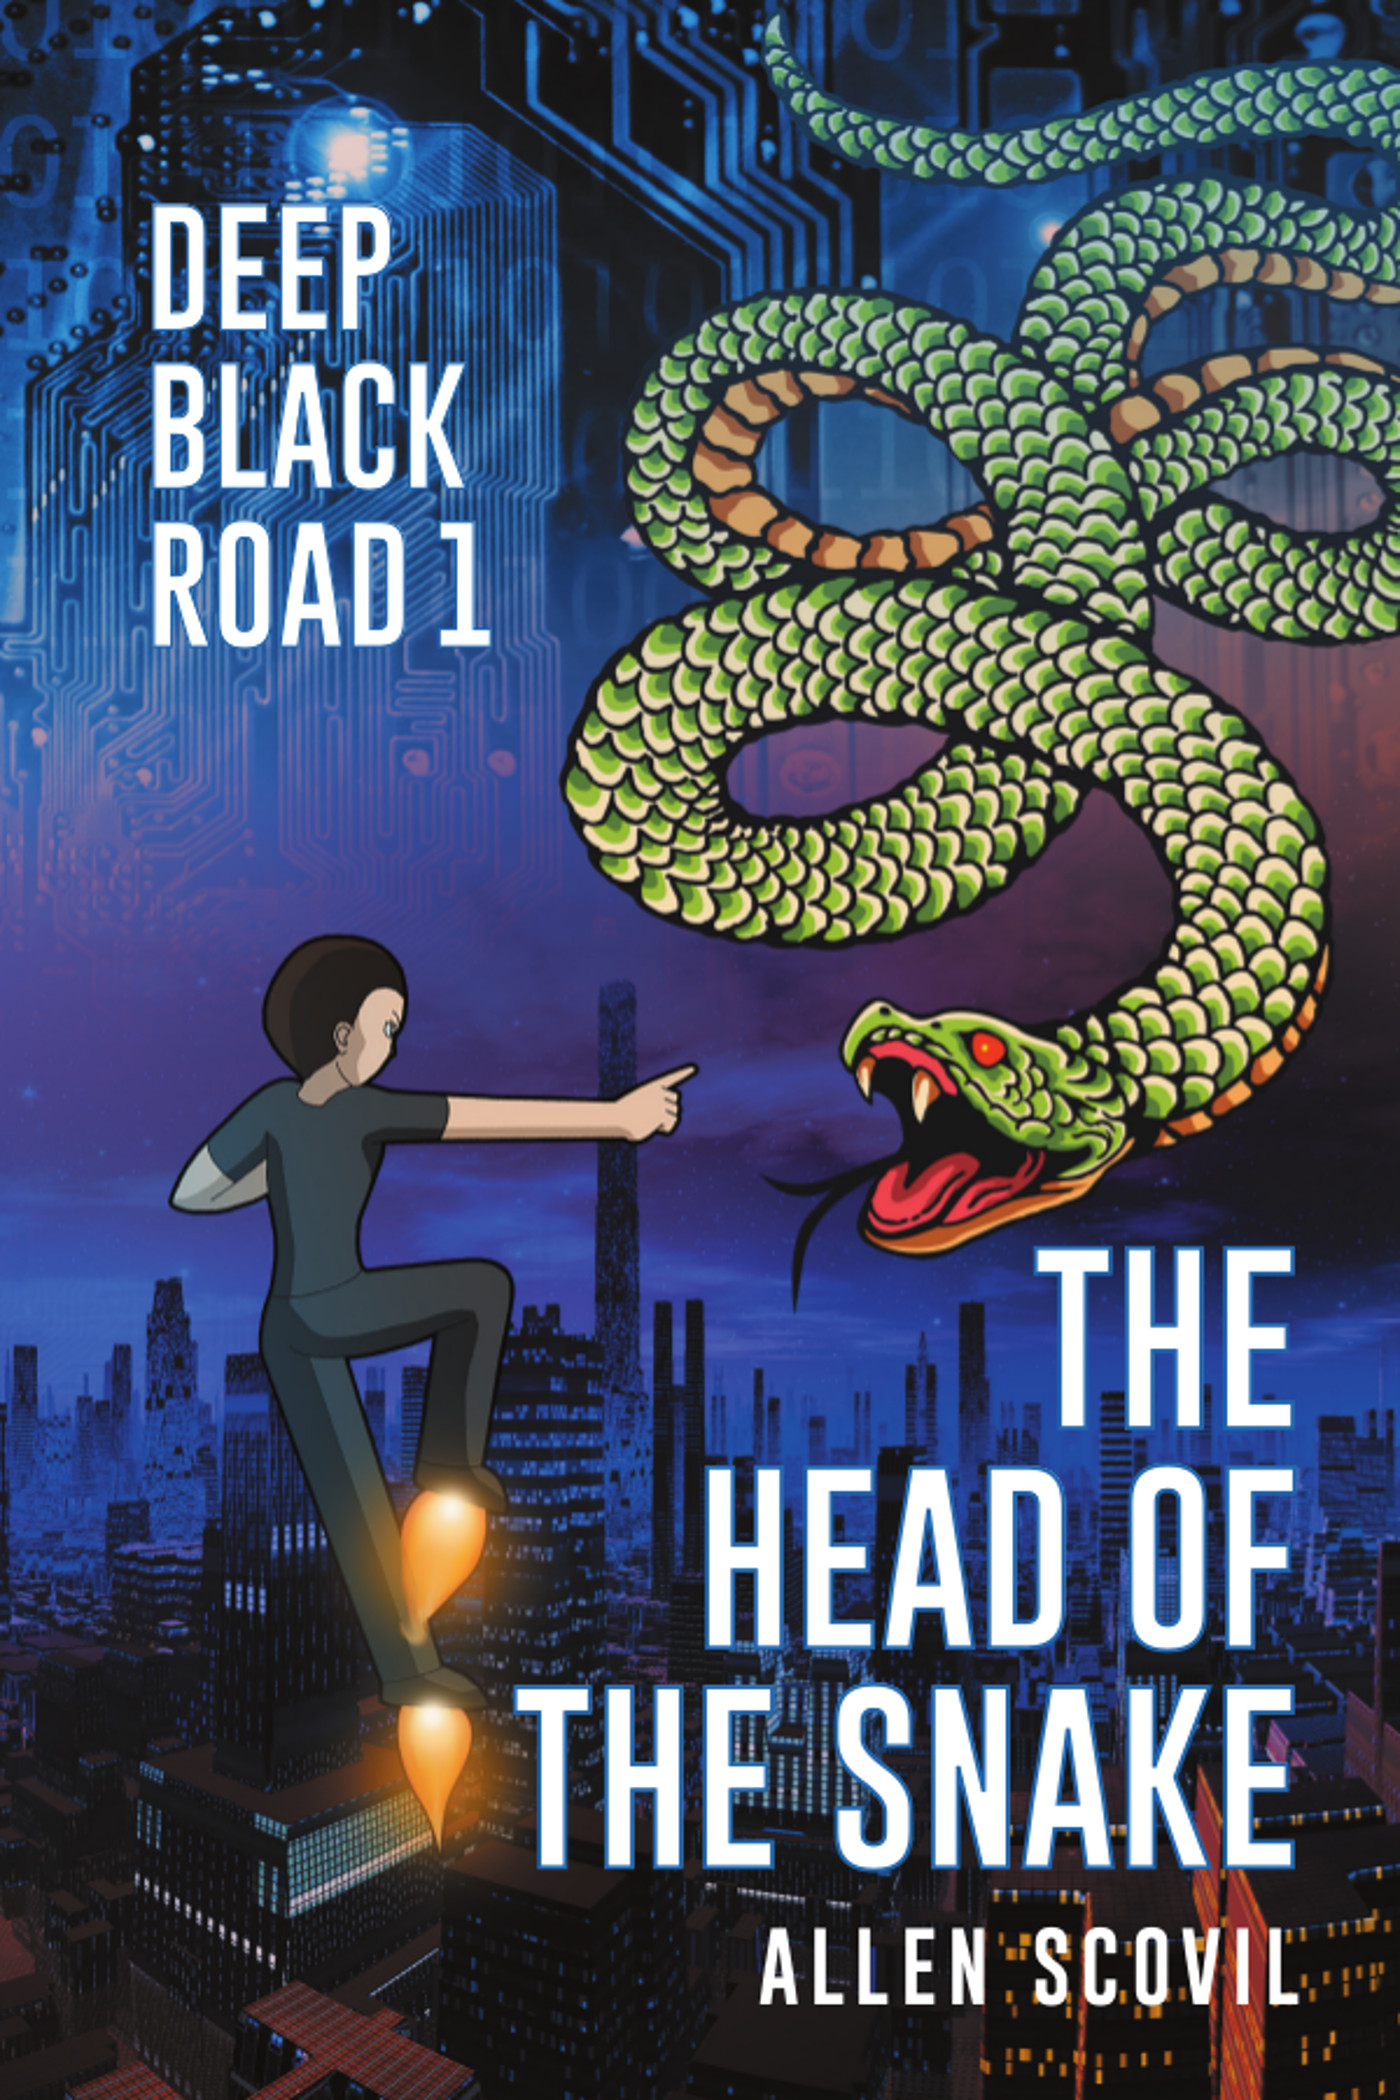 THE HEAD OF THE SNAKE